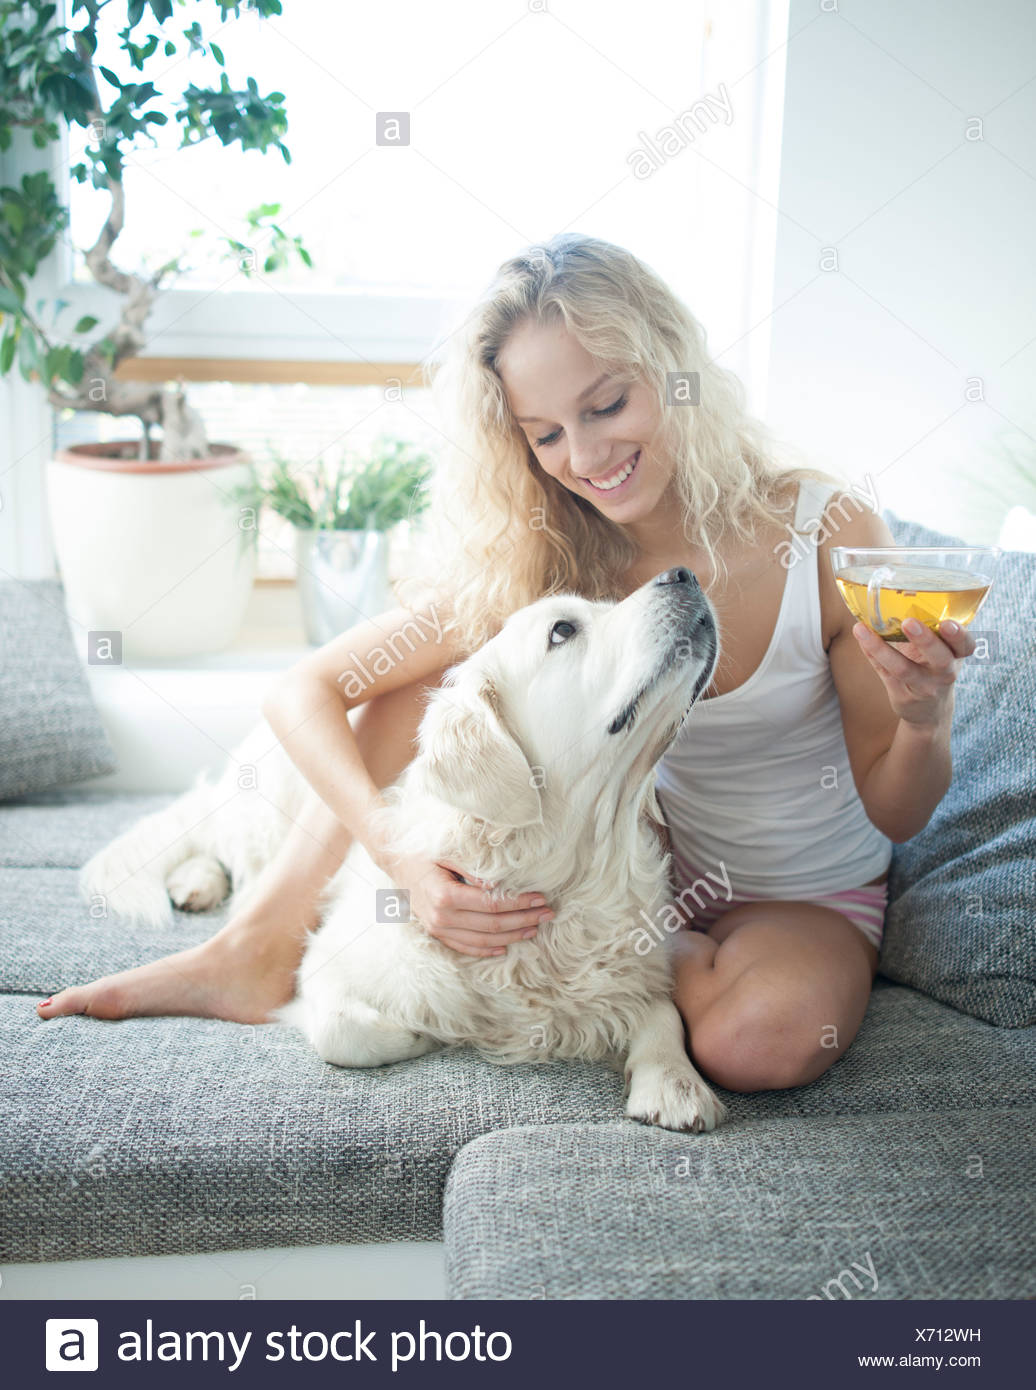 Beautiful woman holding tea cup while touching dog on sofa - Stock Image